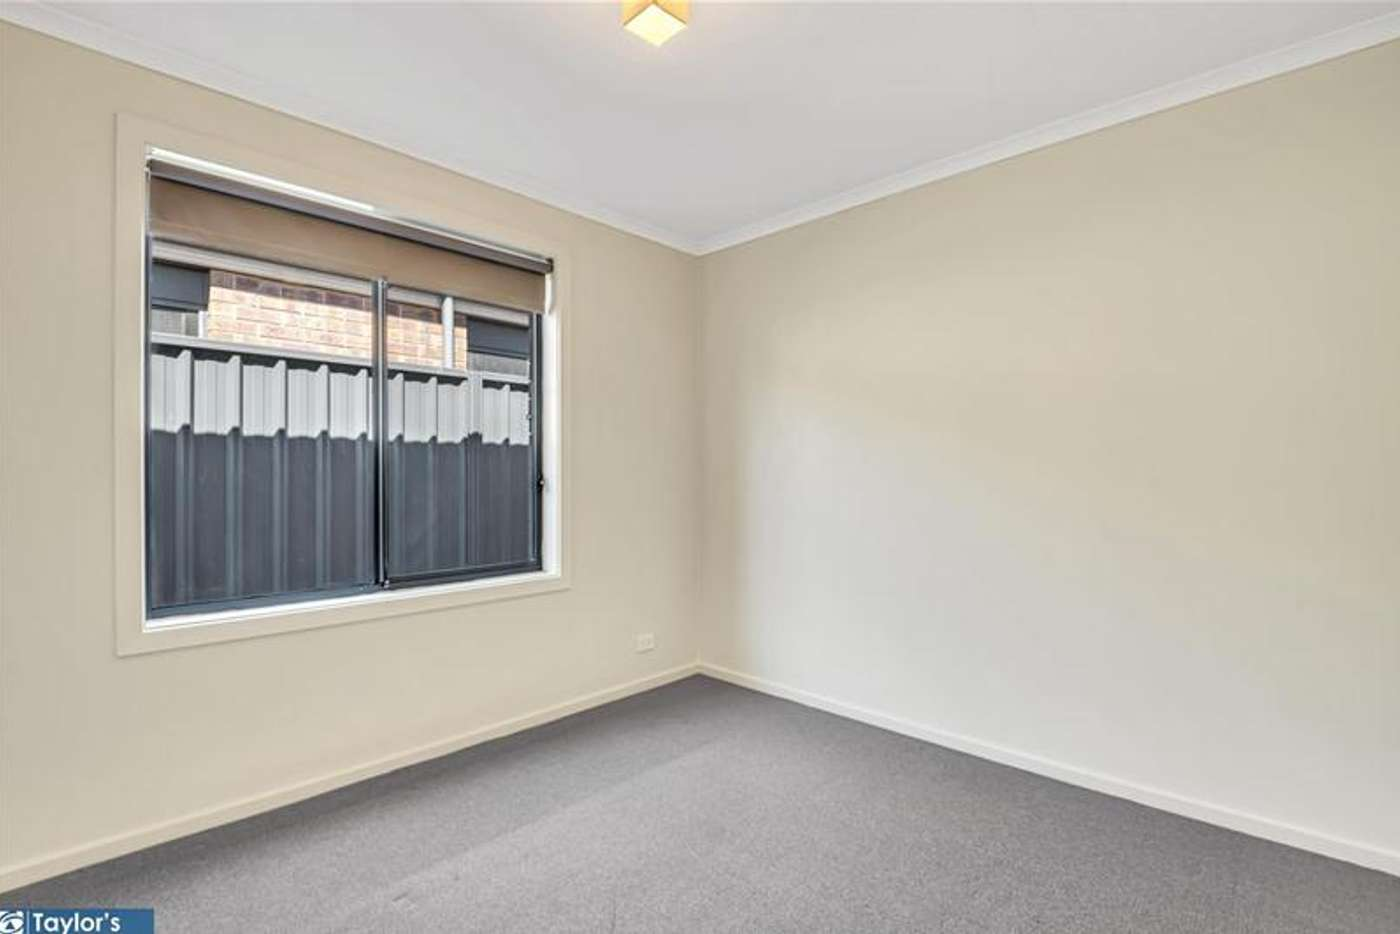 Sixth view of Homely house listing, 22B Harcourt Terrace, Salisbury North SA 5108